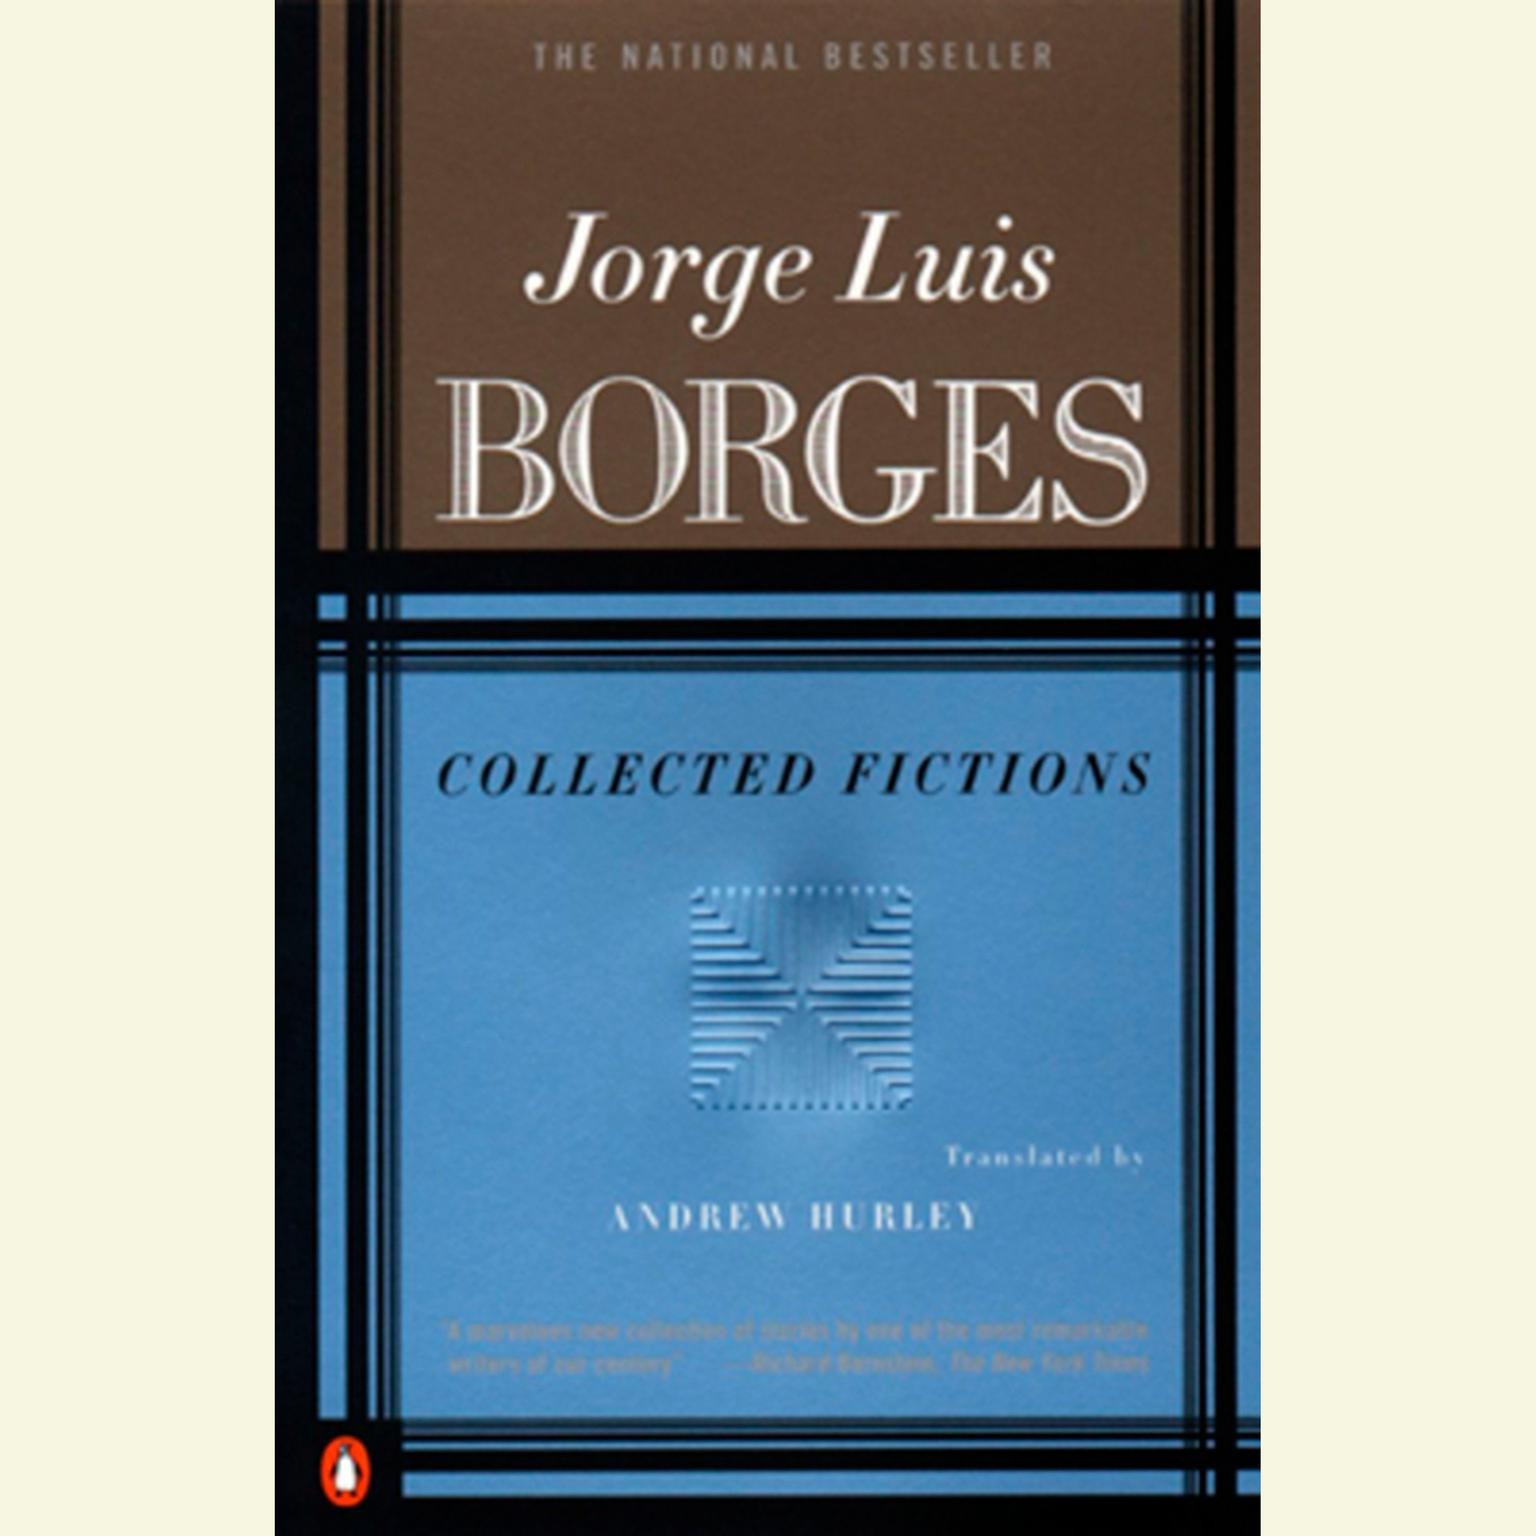 1962 essays jorge luis borges Jorge luis borges (1899-1986) collection of borges' essays dealing with a variety of topics including mathematics, literature (1962), his first book in.